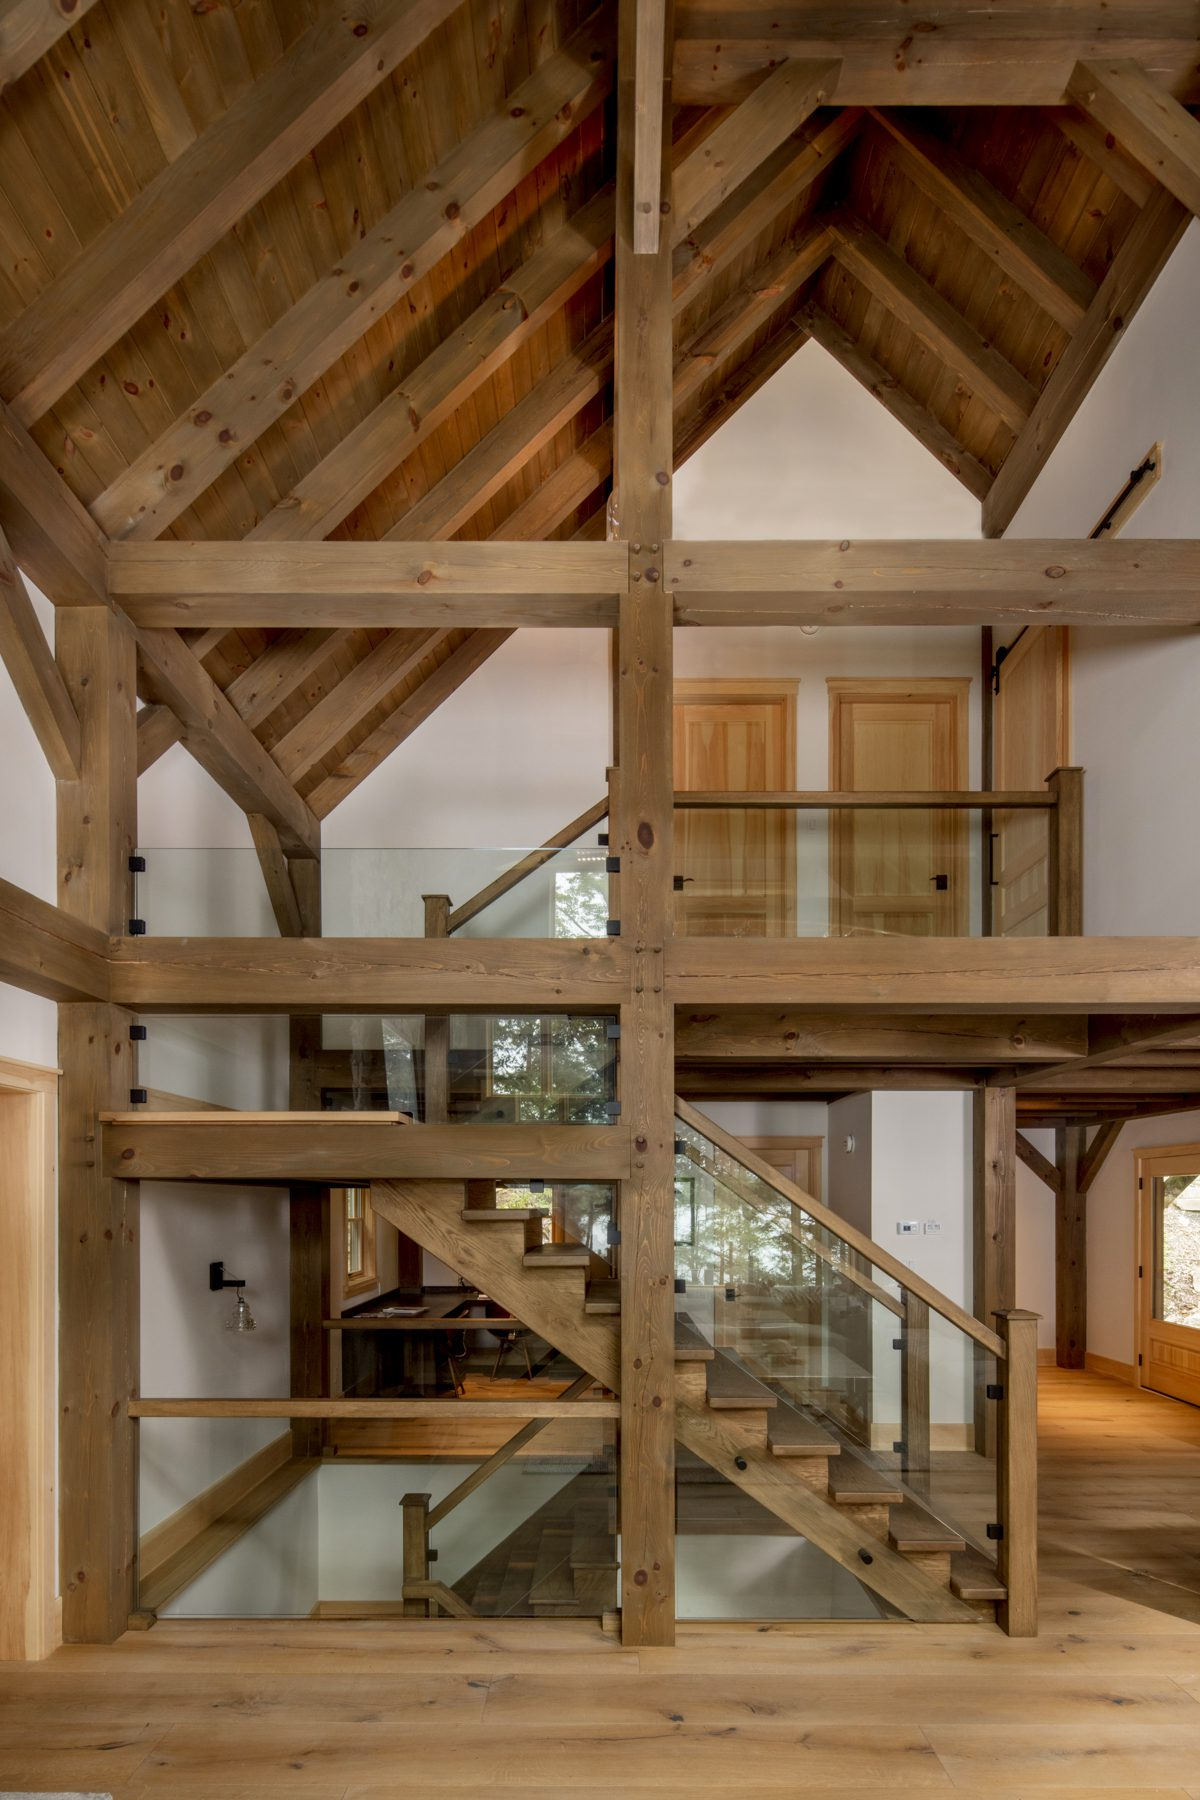 Normerica Timber Frame, Interior, Cottage, Cathedral Ceiling, Stairs, Glass Railing